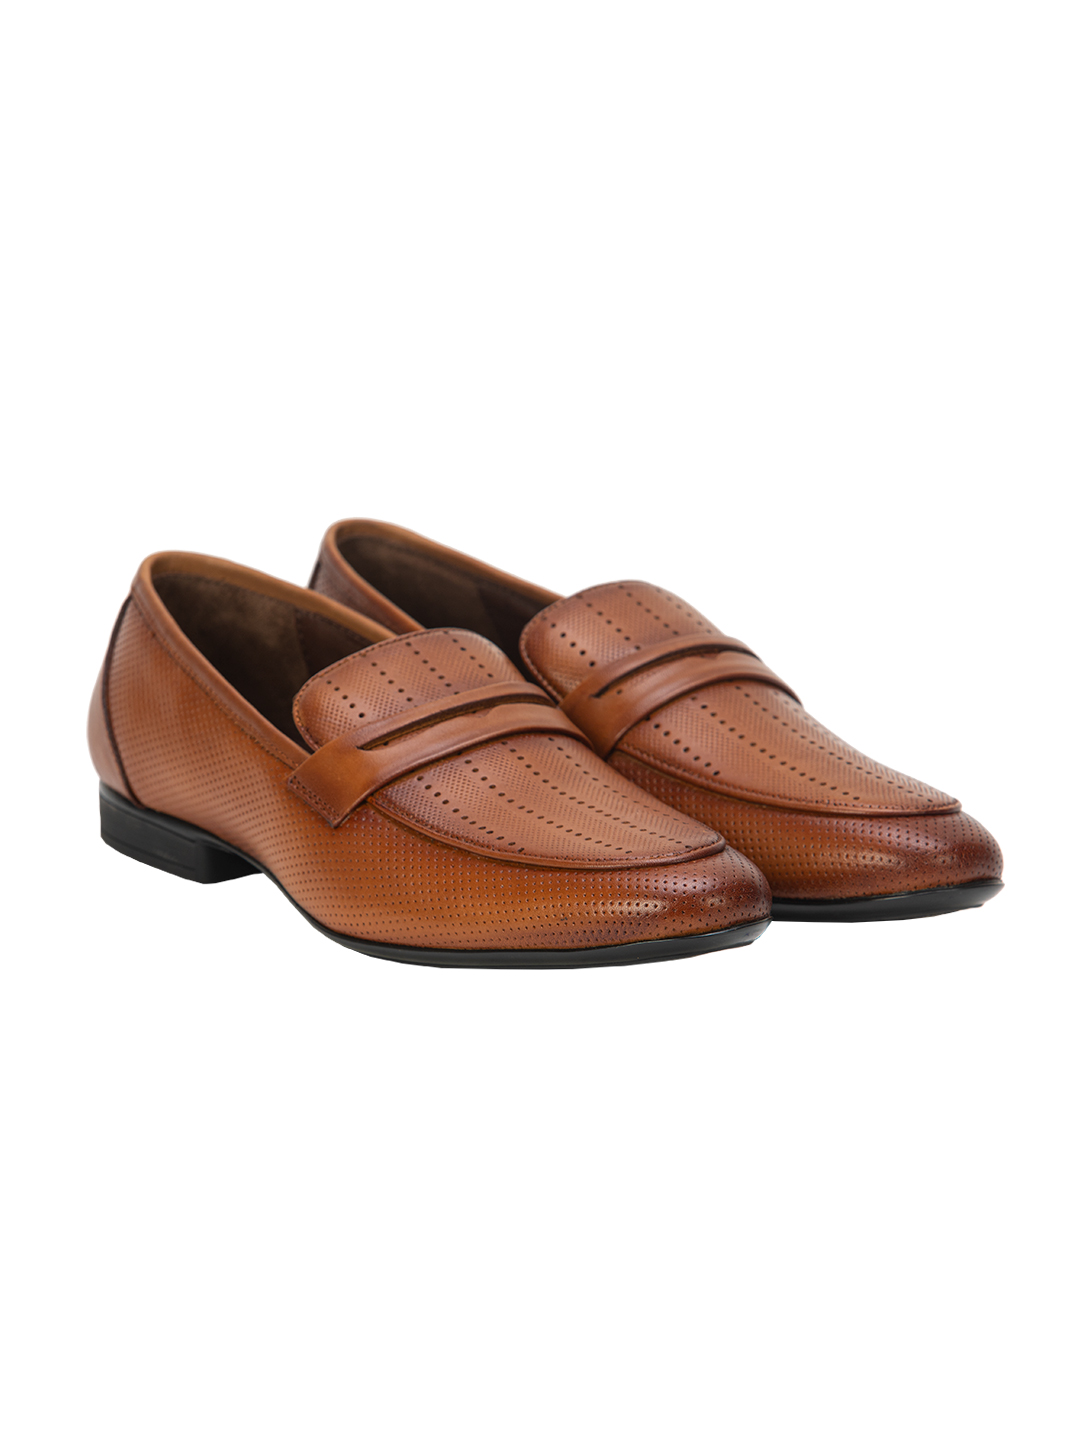 Buy VON WELLX GERMANY COMFORT TAN MATTEO SHOES In Delhi